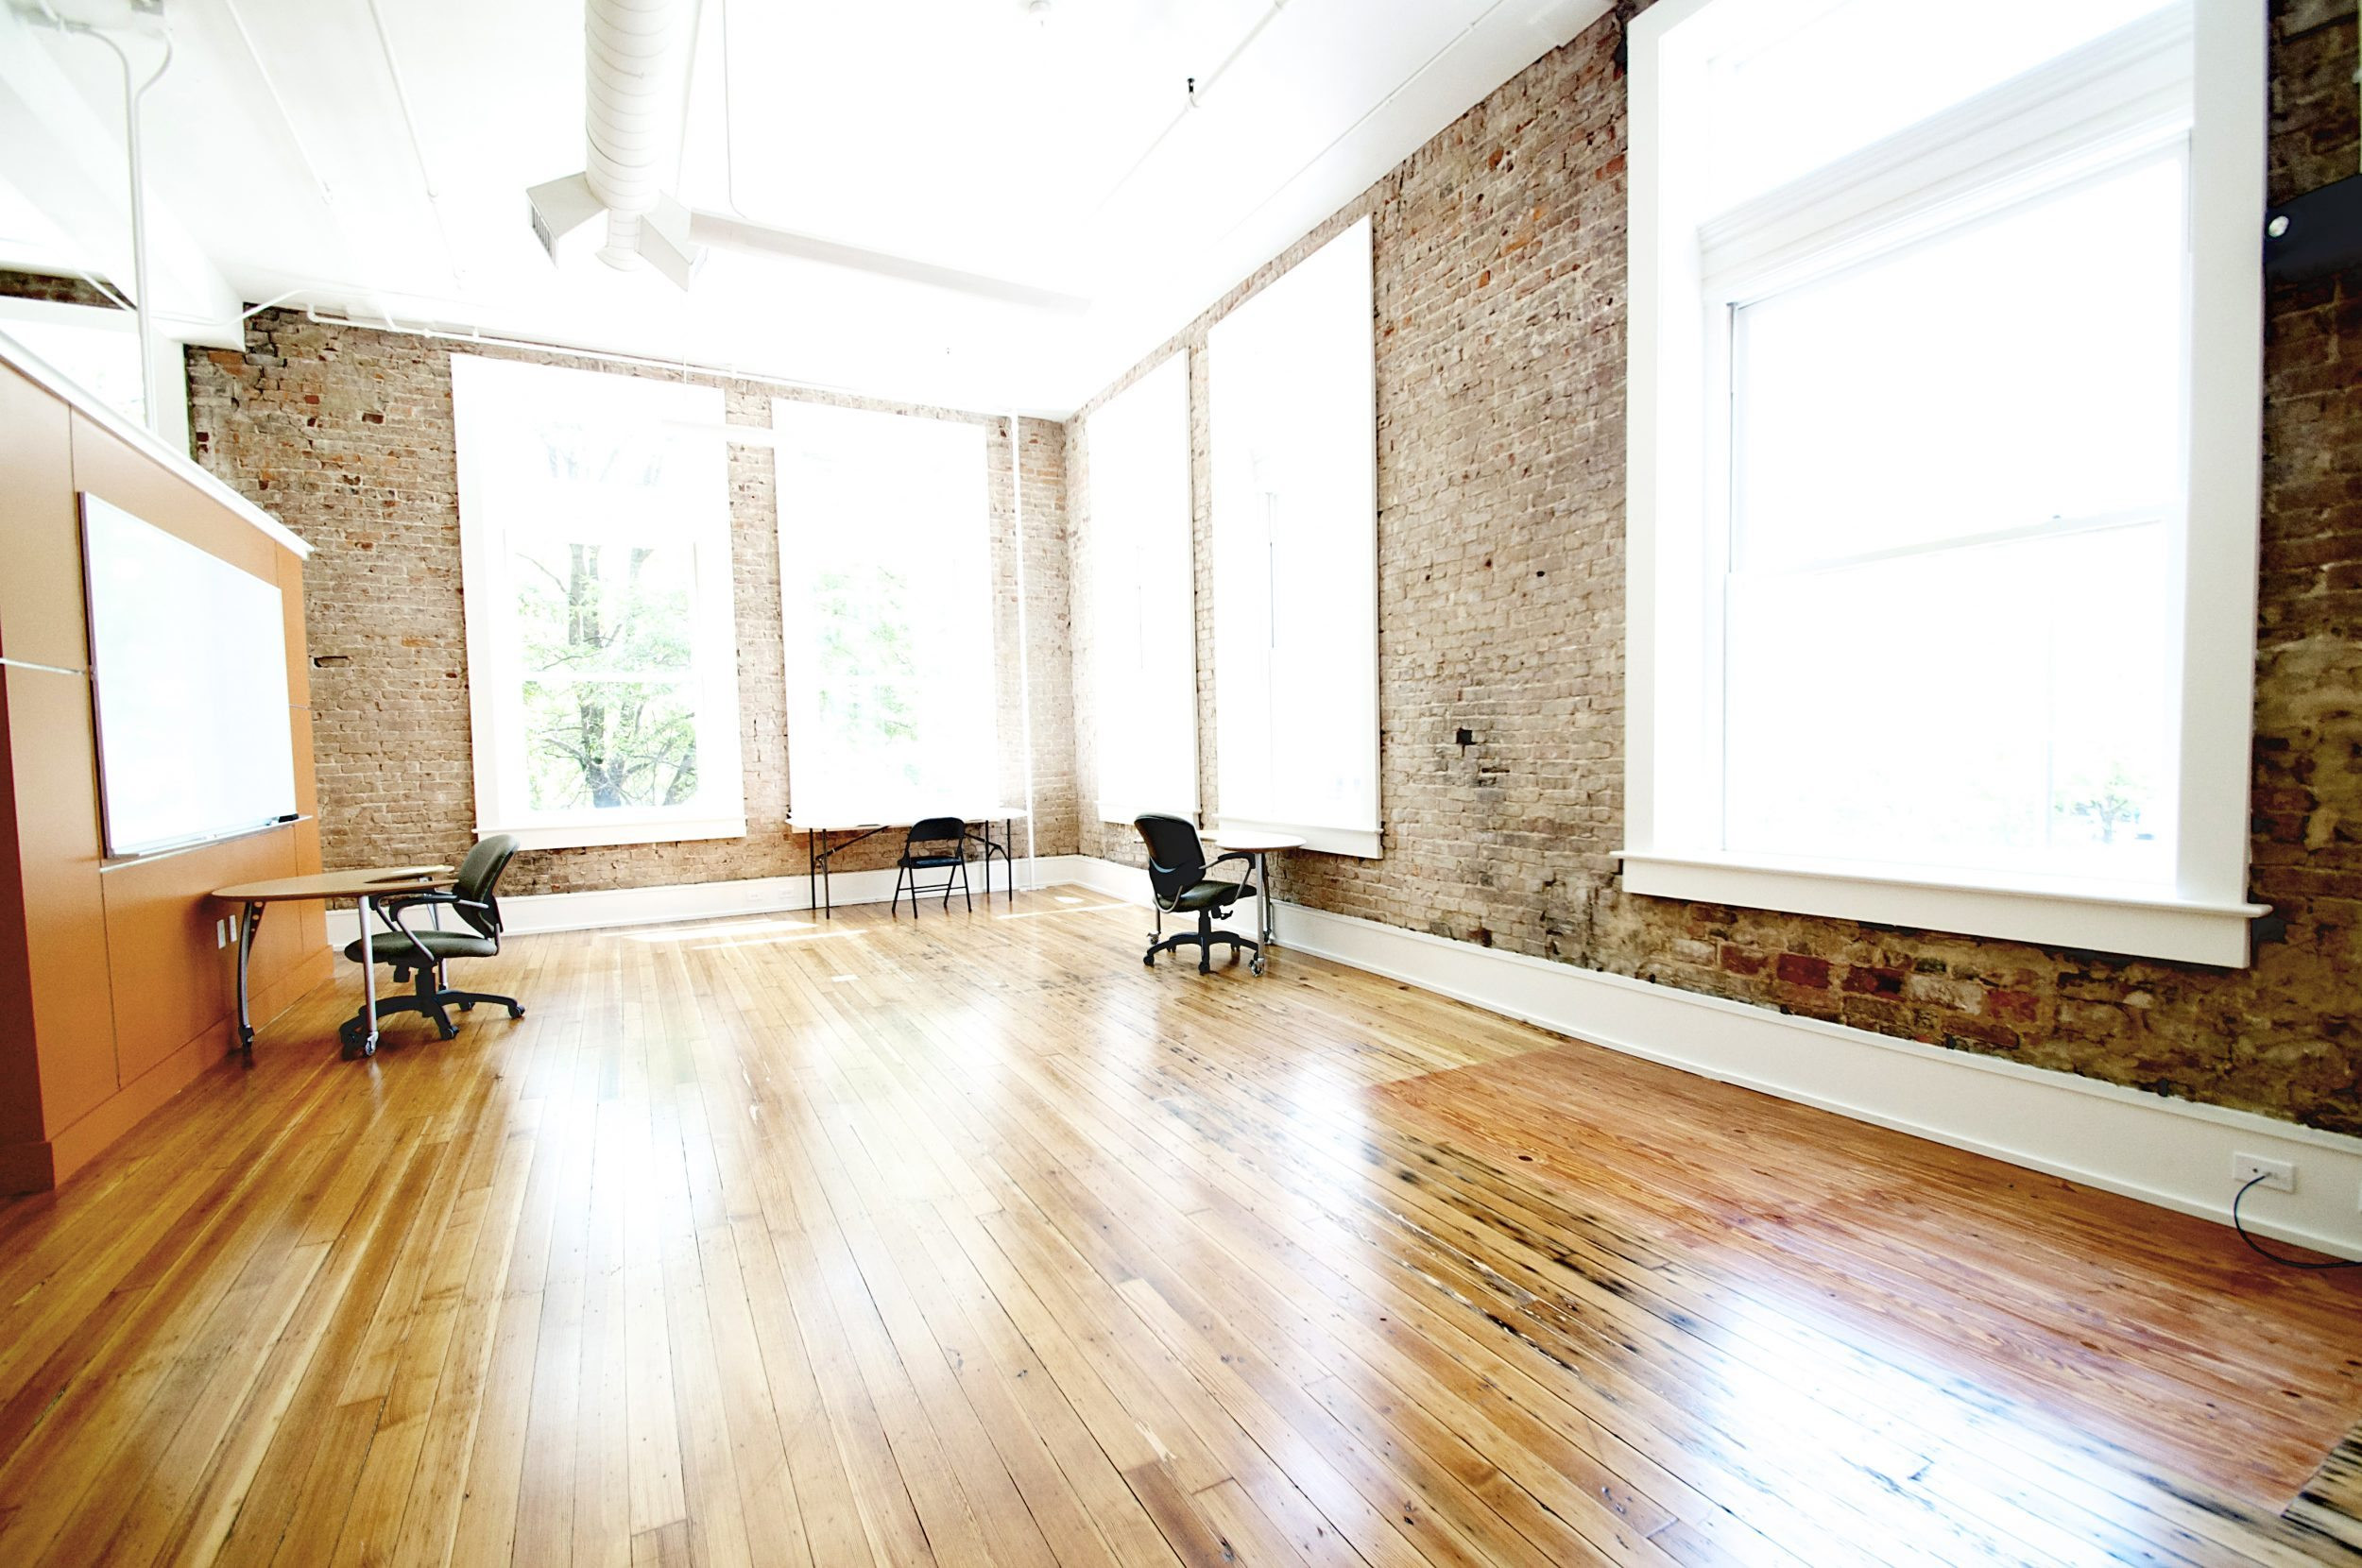 26 Unique Hardwood Flooring Chattanooga 2021 free download hardwood flooring chattanooga of lamp post group emj in project photos